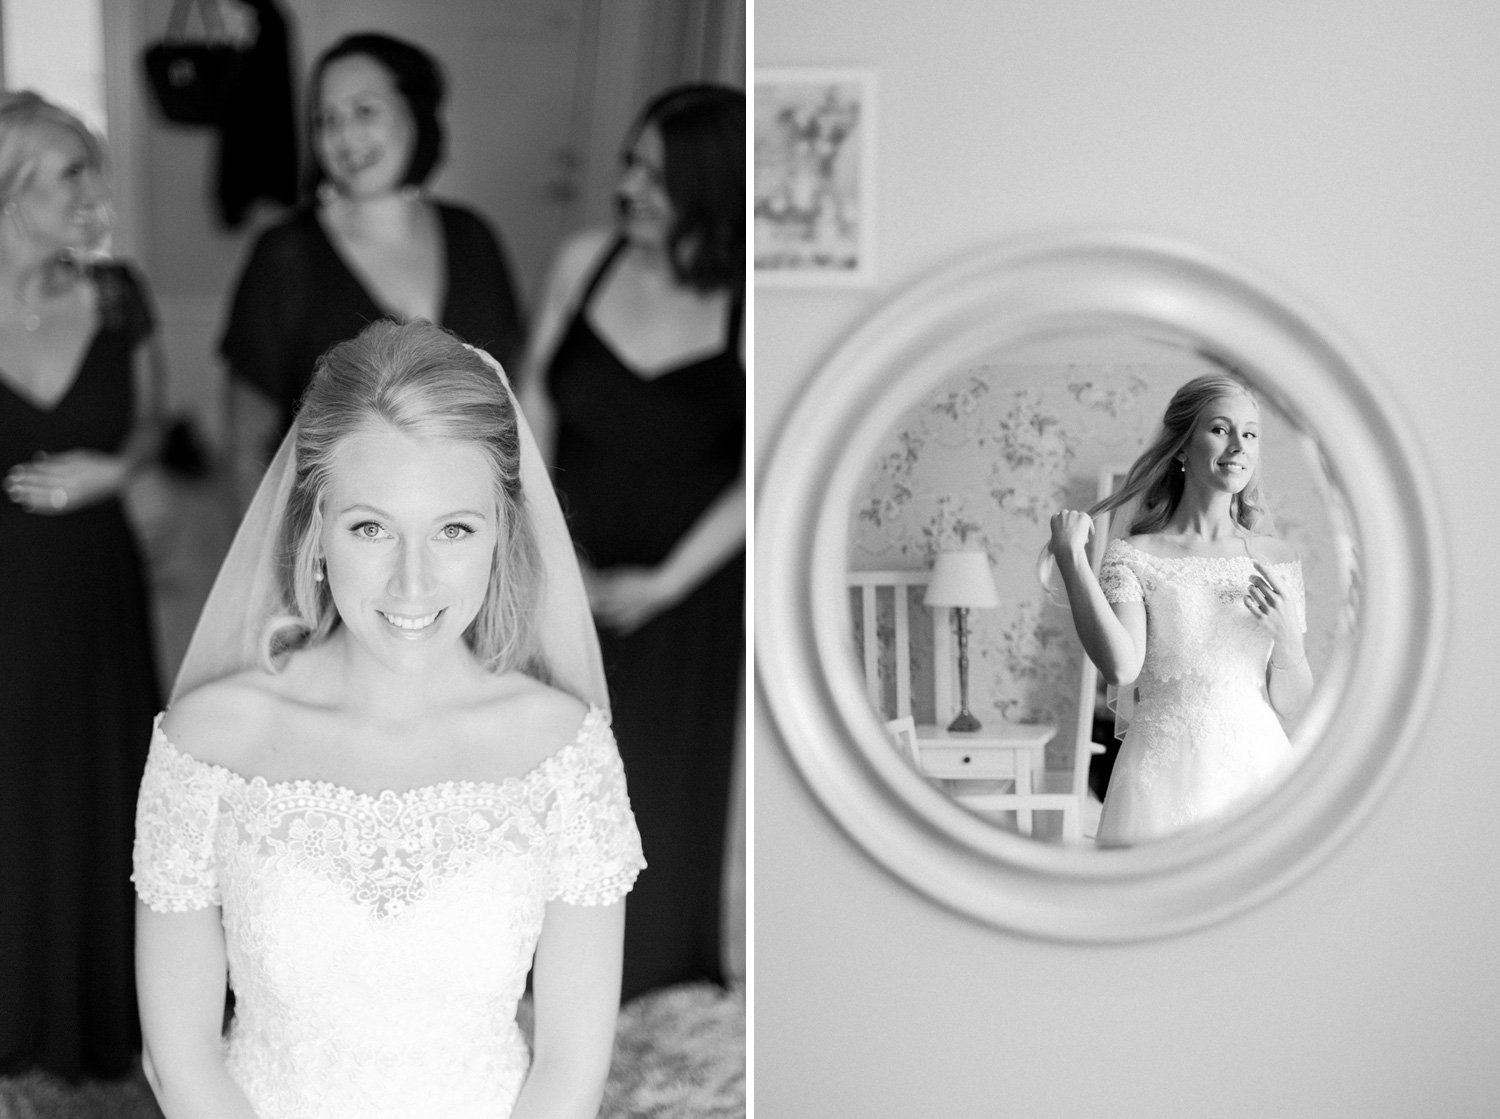 010-sweden-vidbynäs-wedding-photographer-bröllopsfotograf.jpg